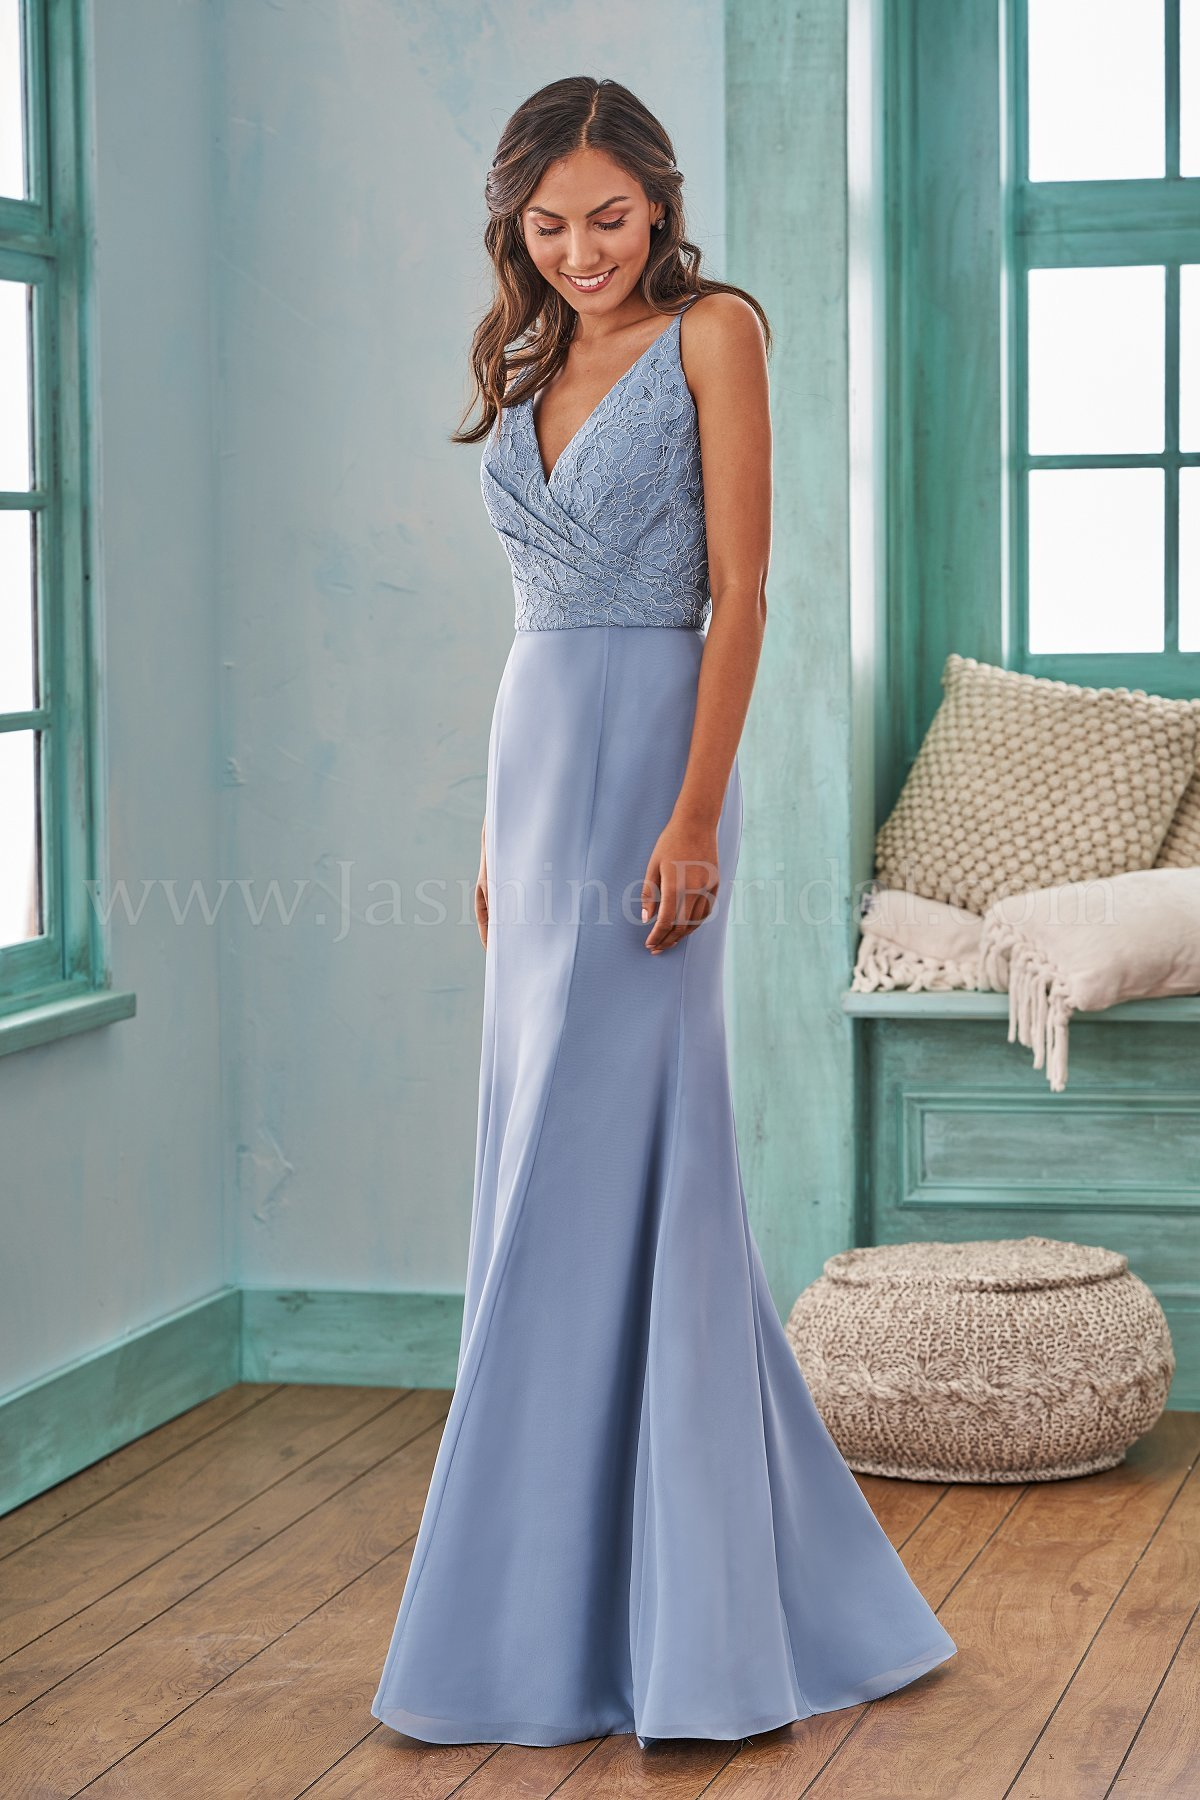 bridesmaid-dresses-B203007-F